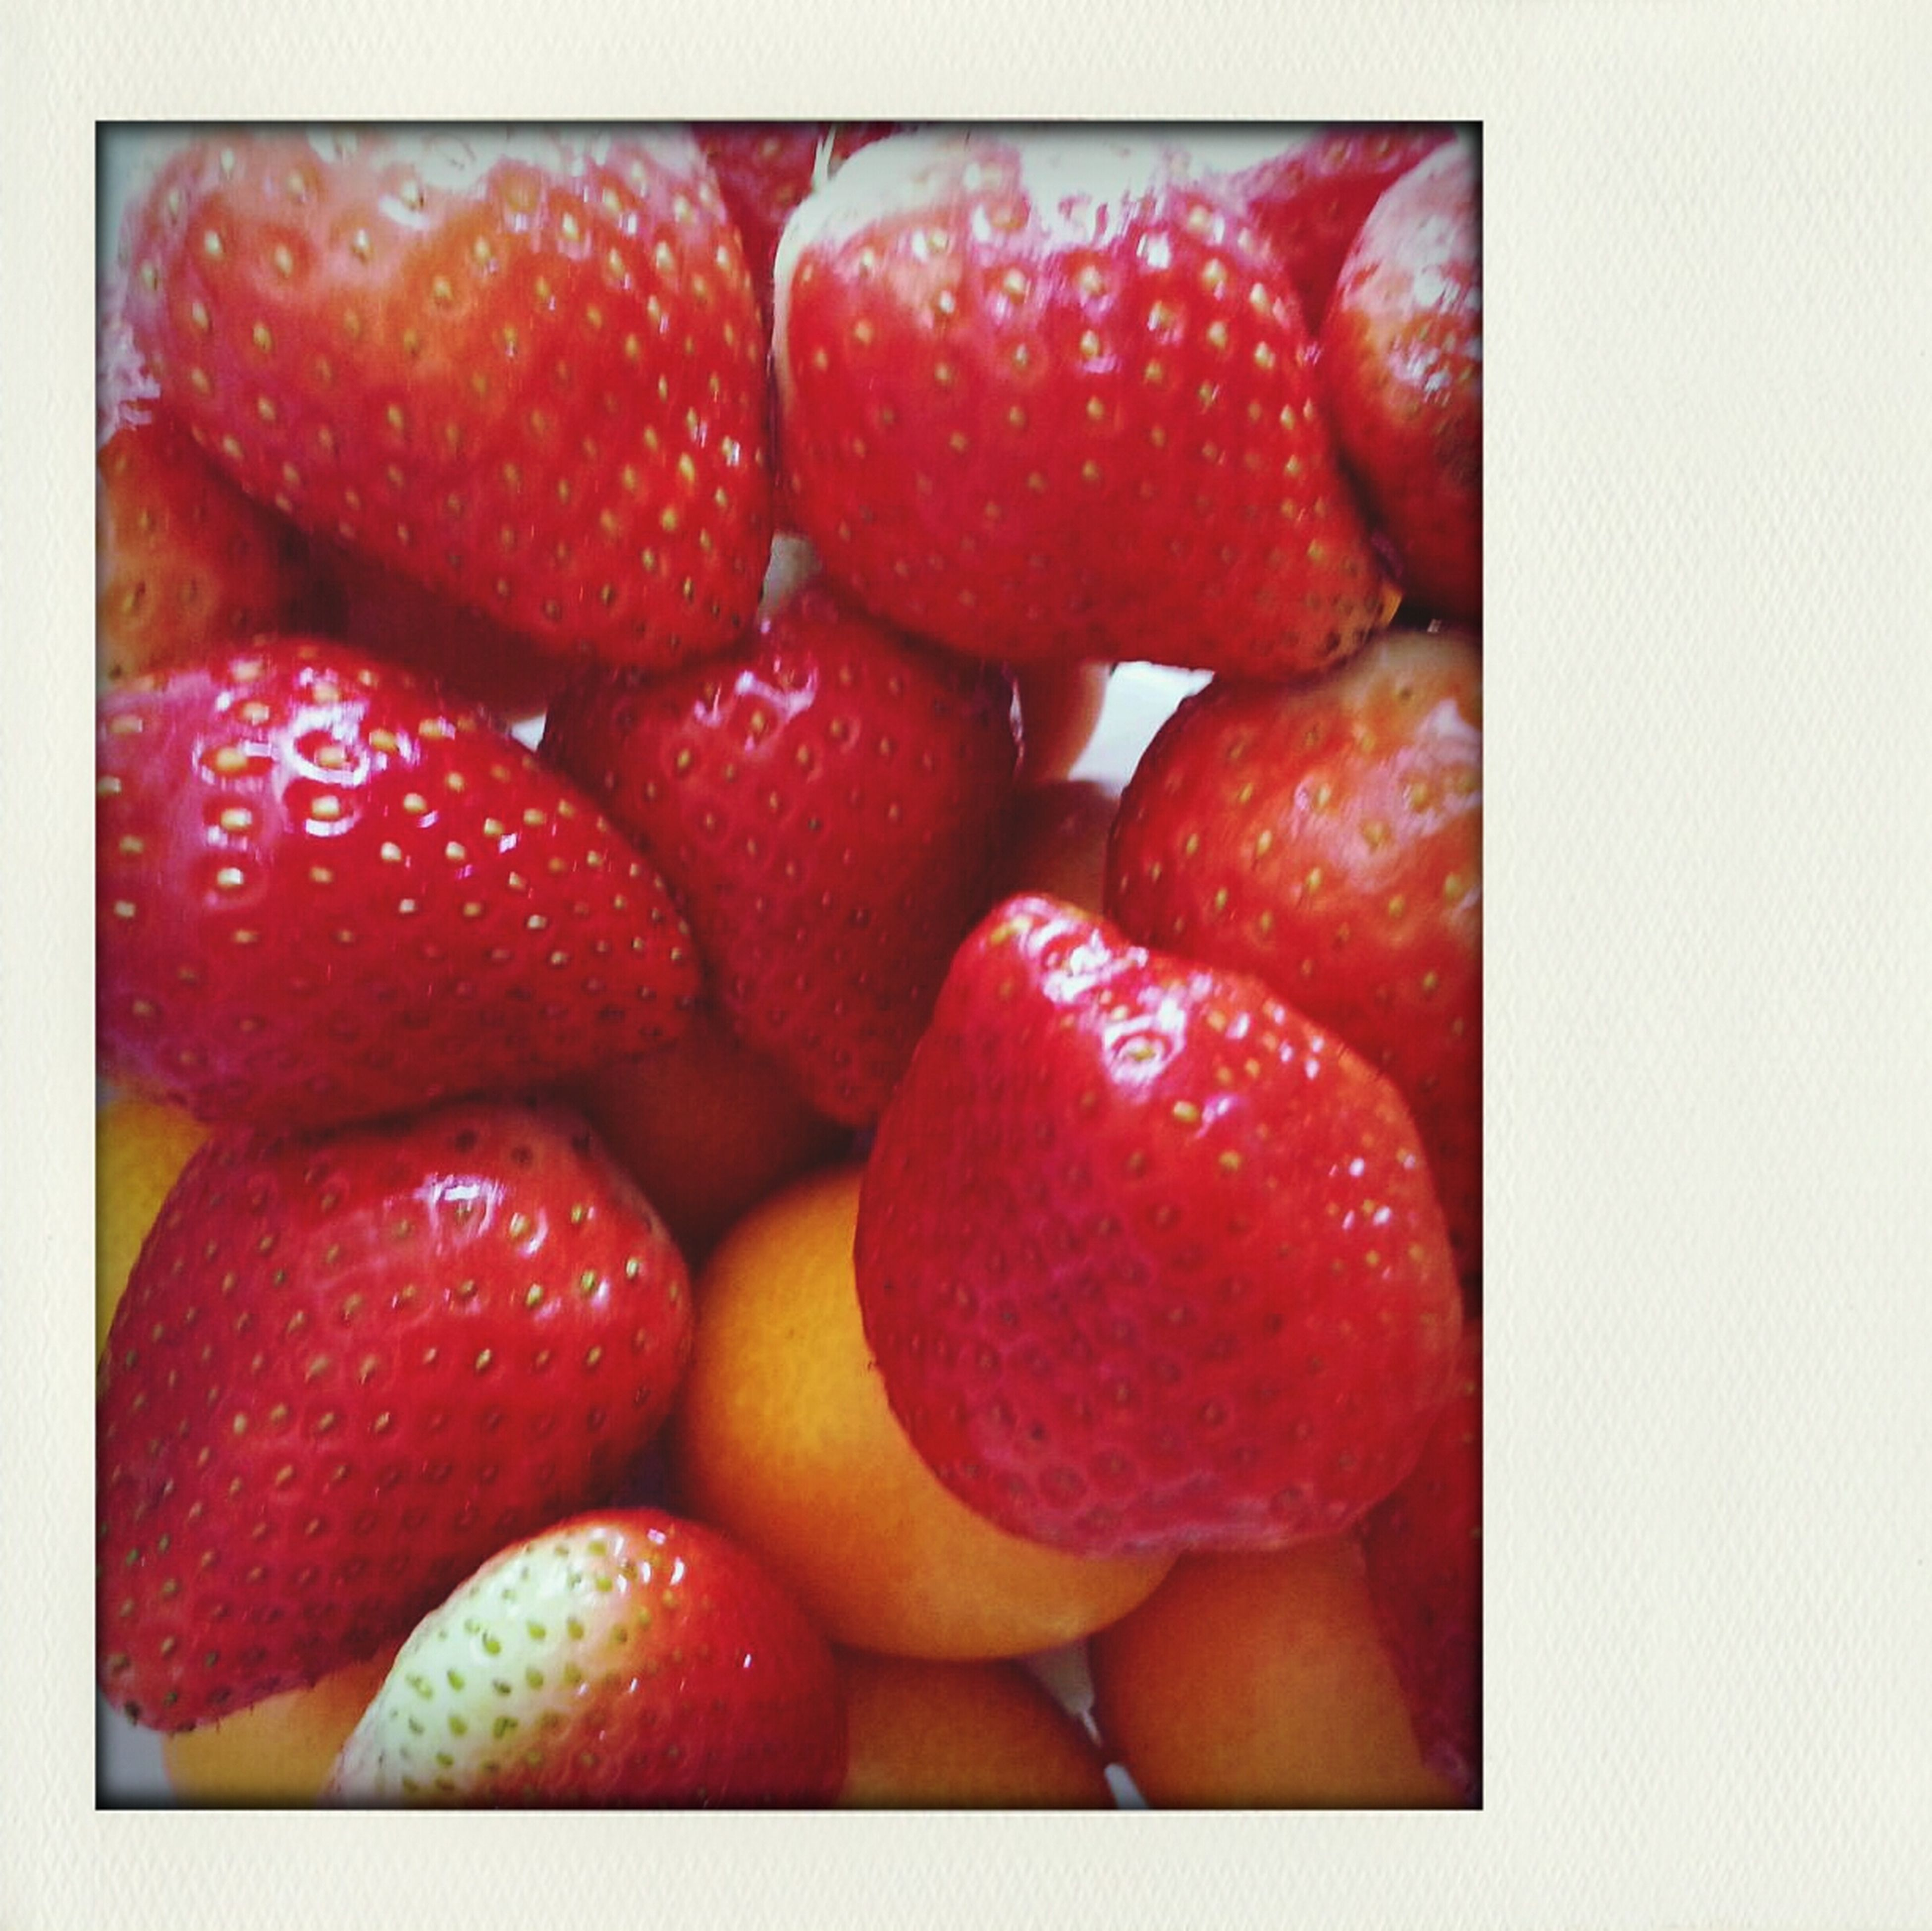 red, food and drink, food, healthy eating, freshness, fruit, strawberry, still life, indoors, close-up, large group of objects, backgrounds, abundance, full frame, juicy, ripe, transfer print, organic, no people, berry fruit